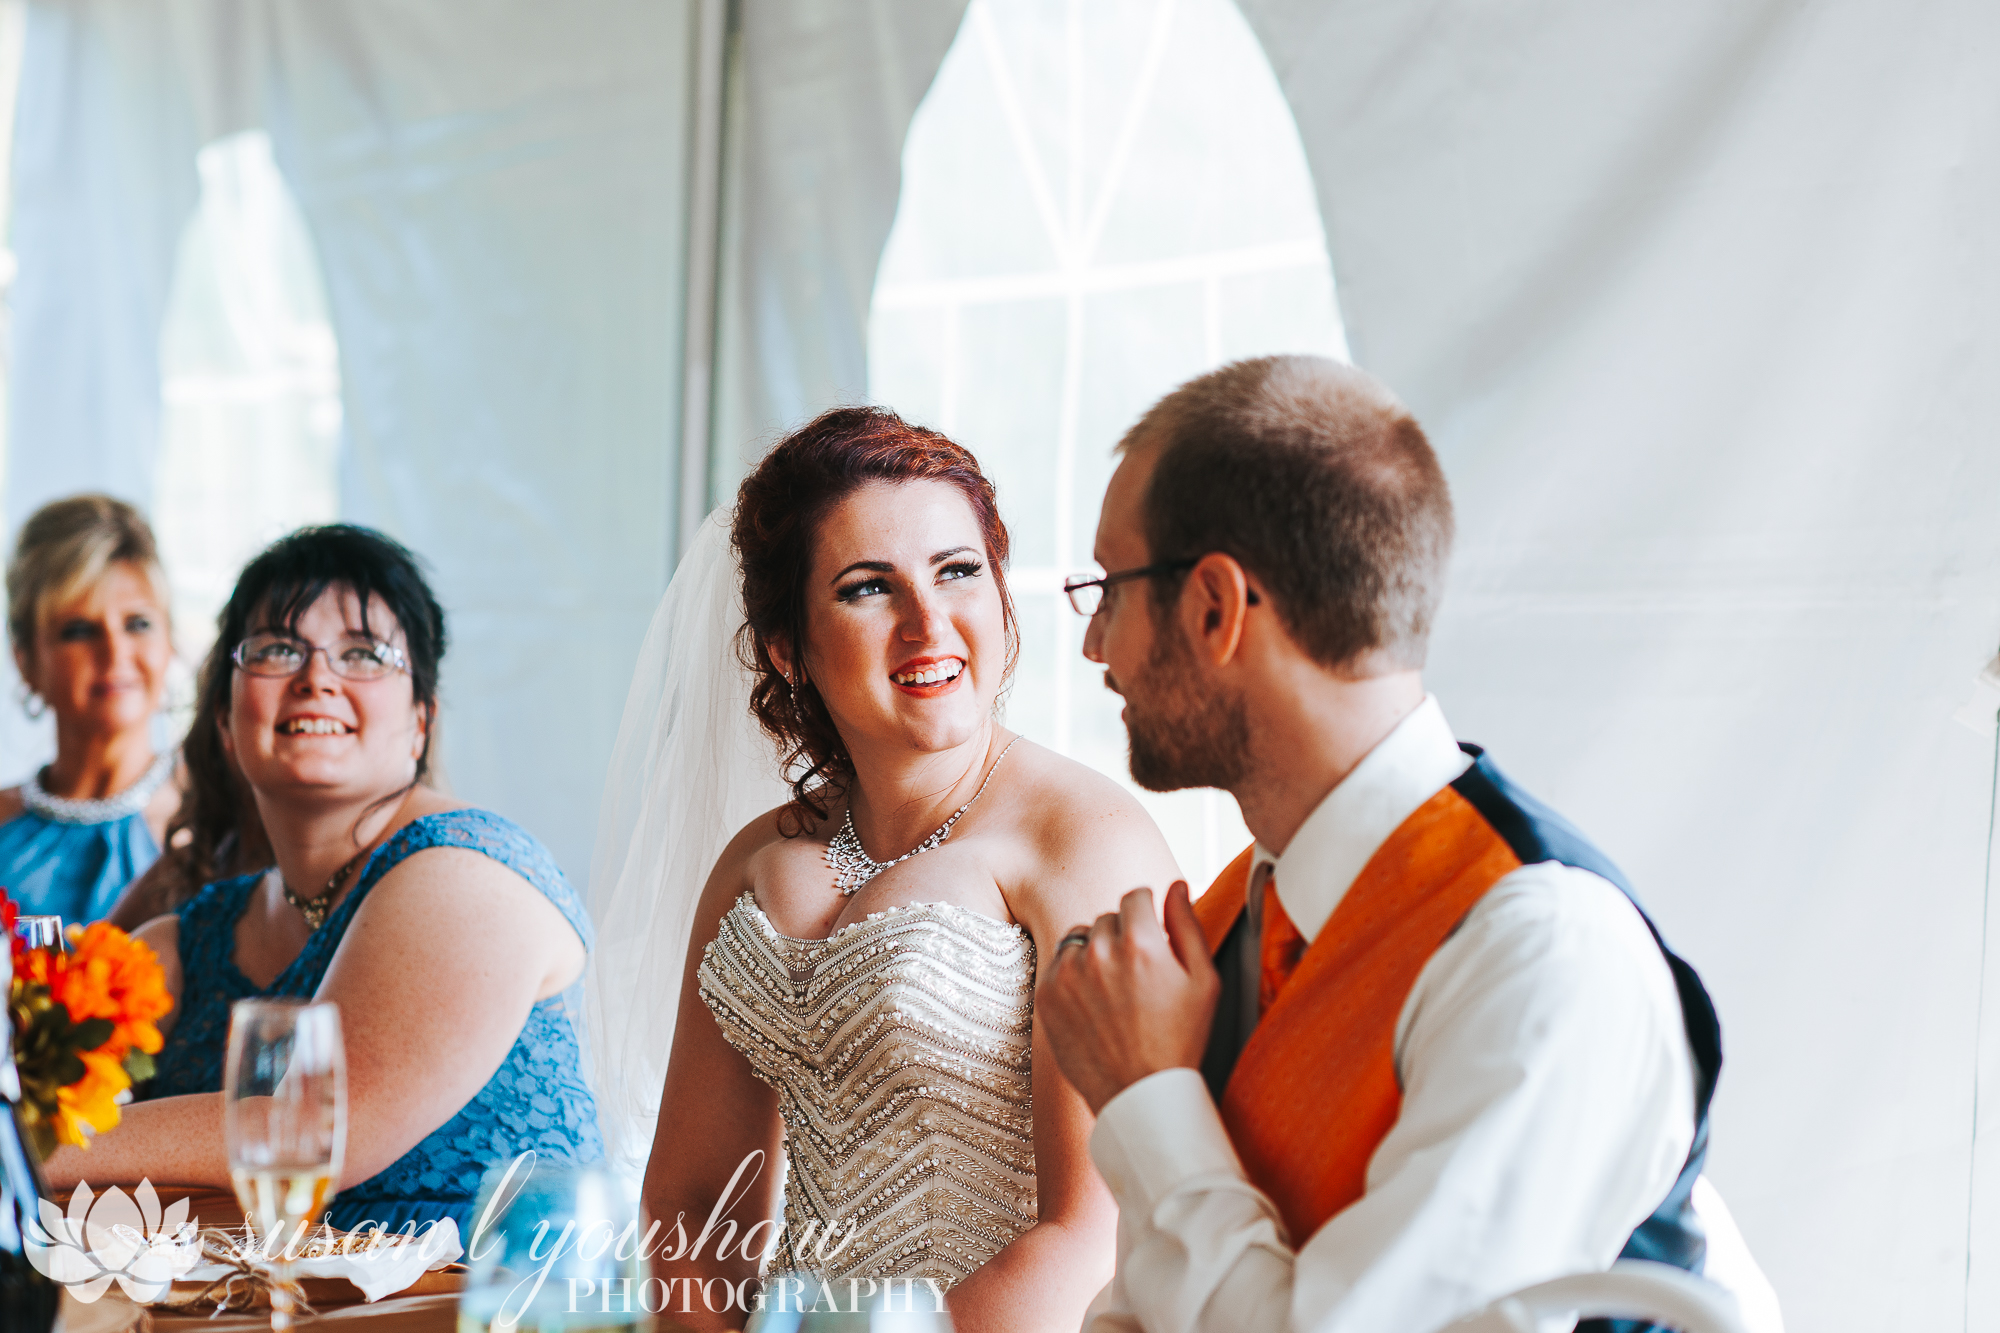 BLOG Kelly and DJ Roberts 08-25-2018 SLY Photography LLC-138.jpg